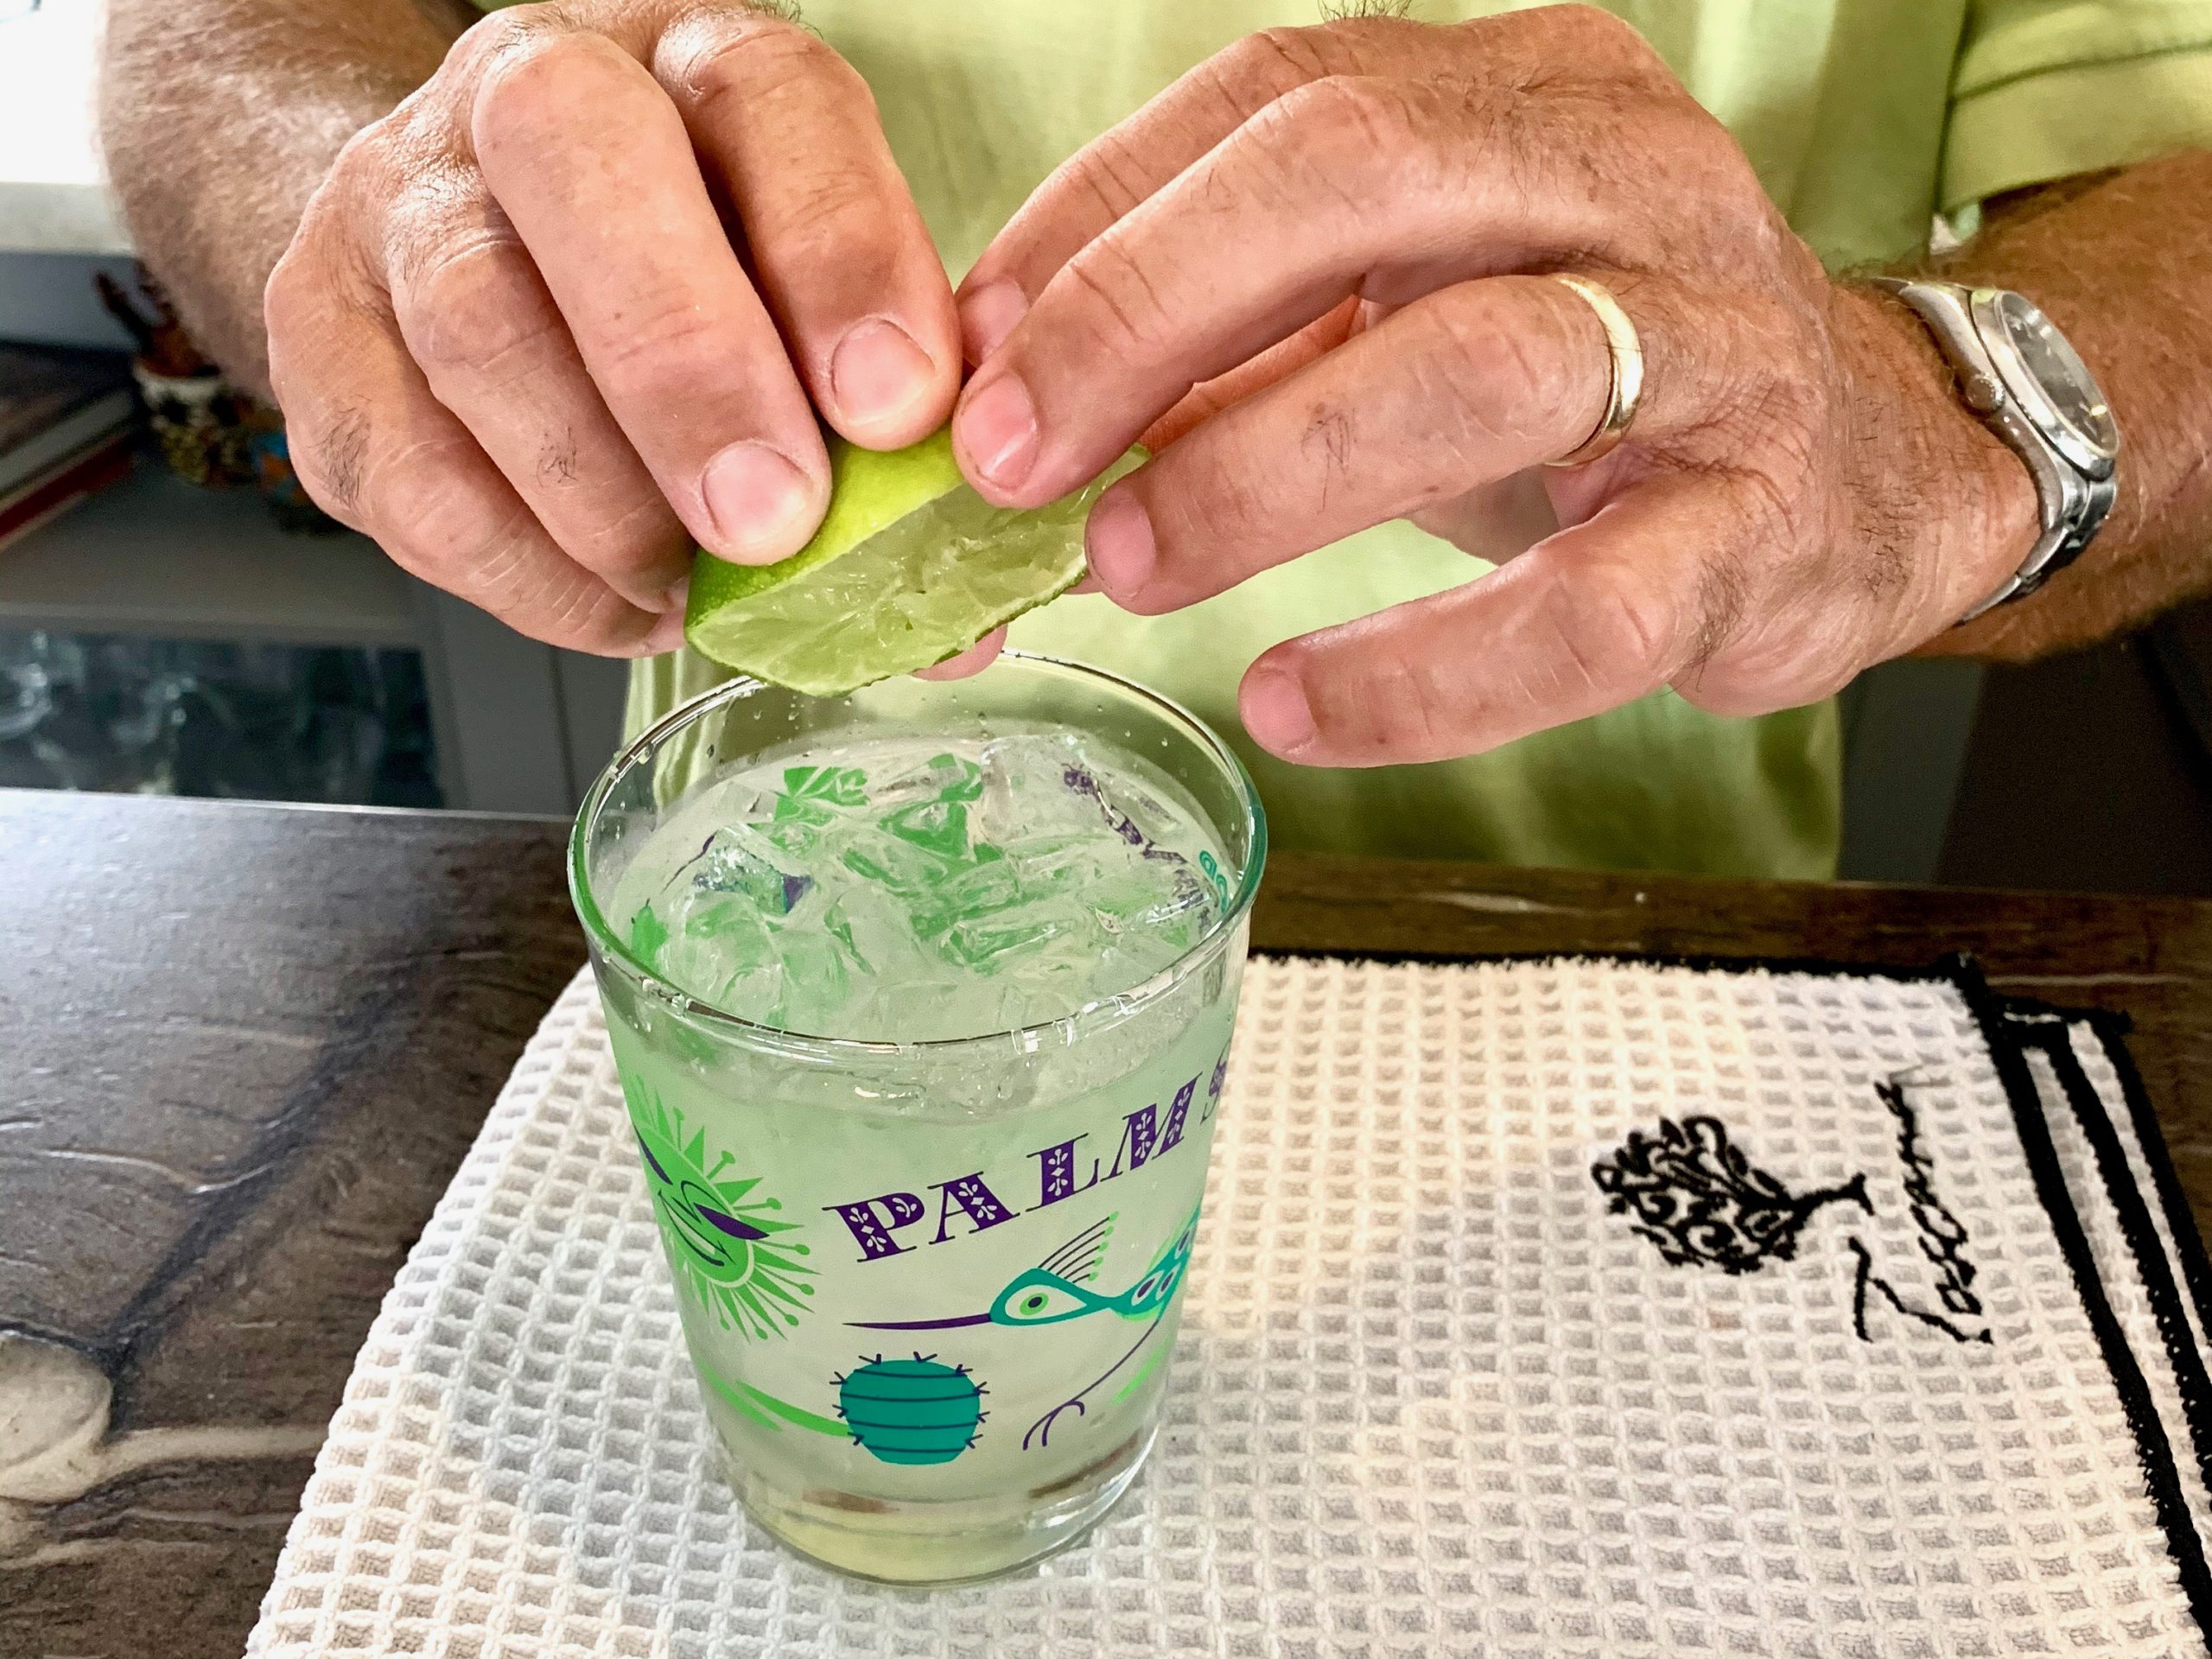 Freshly made margarita with man squeezing lime